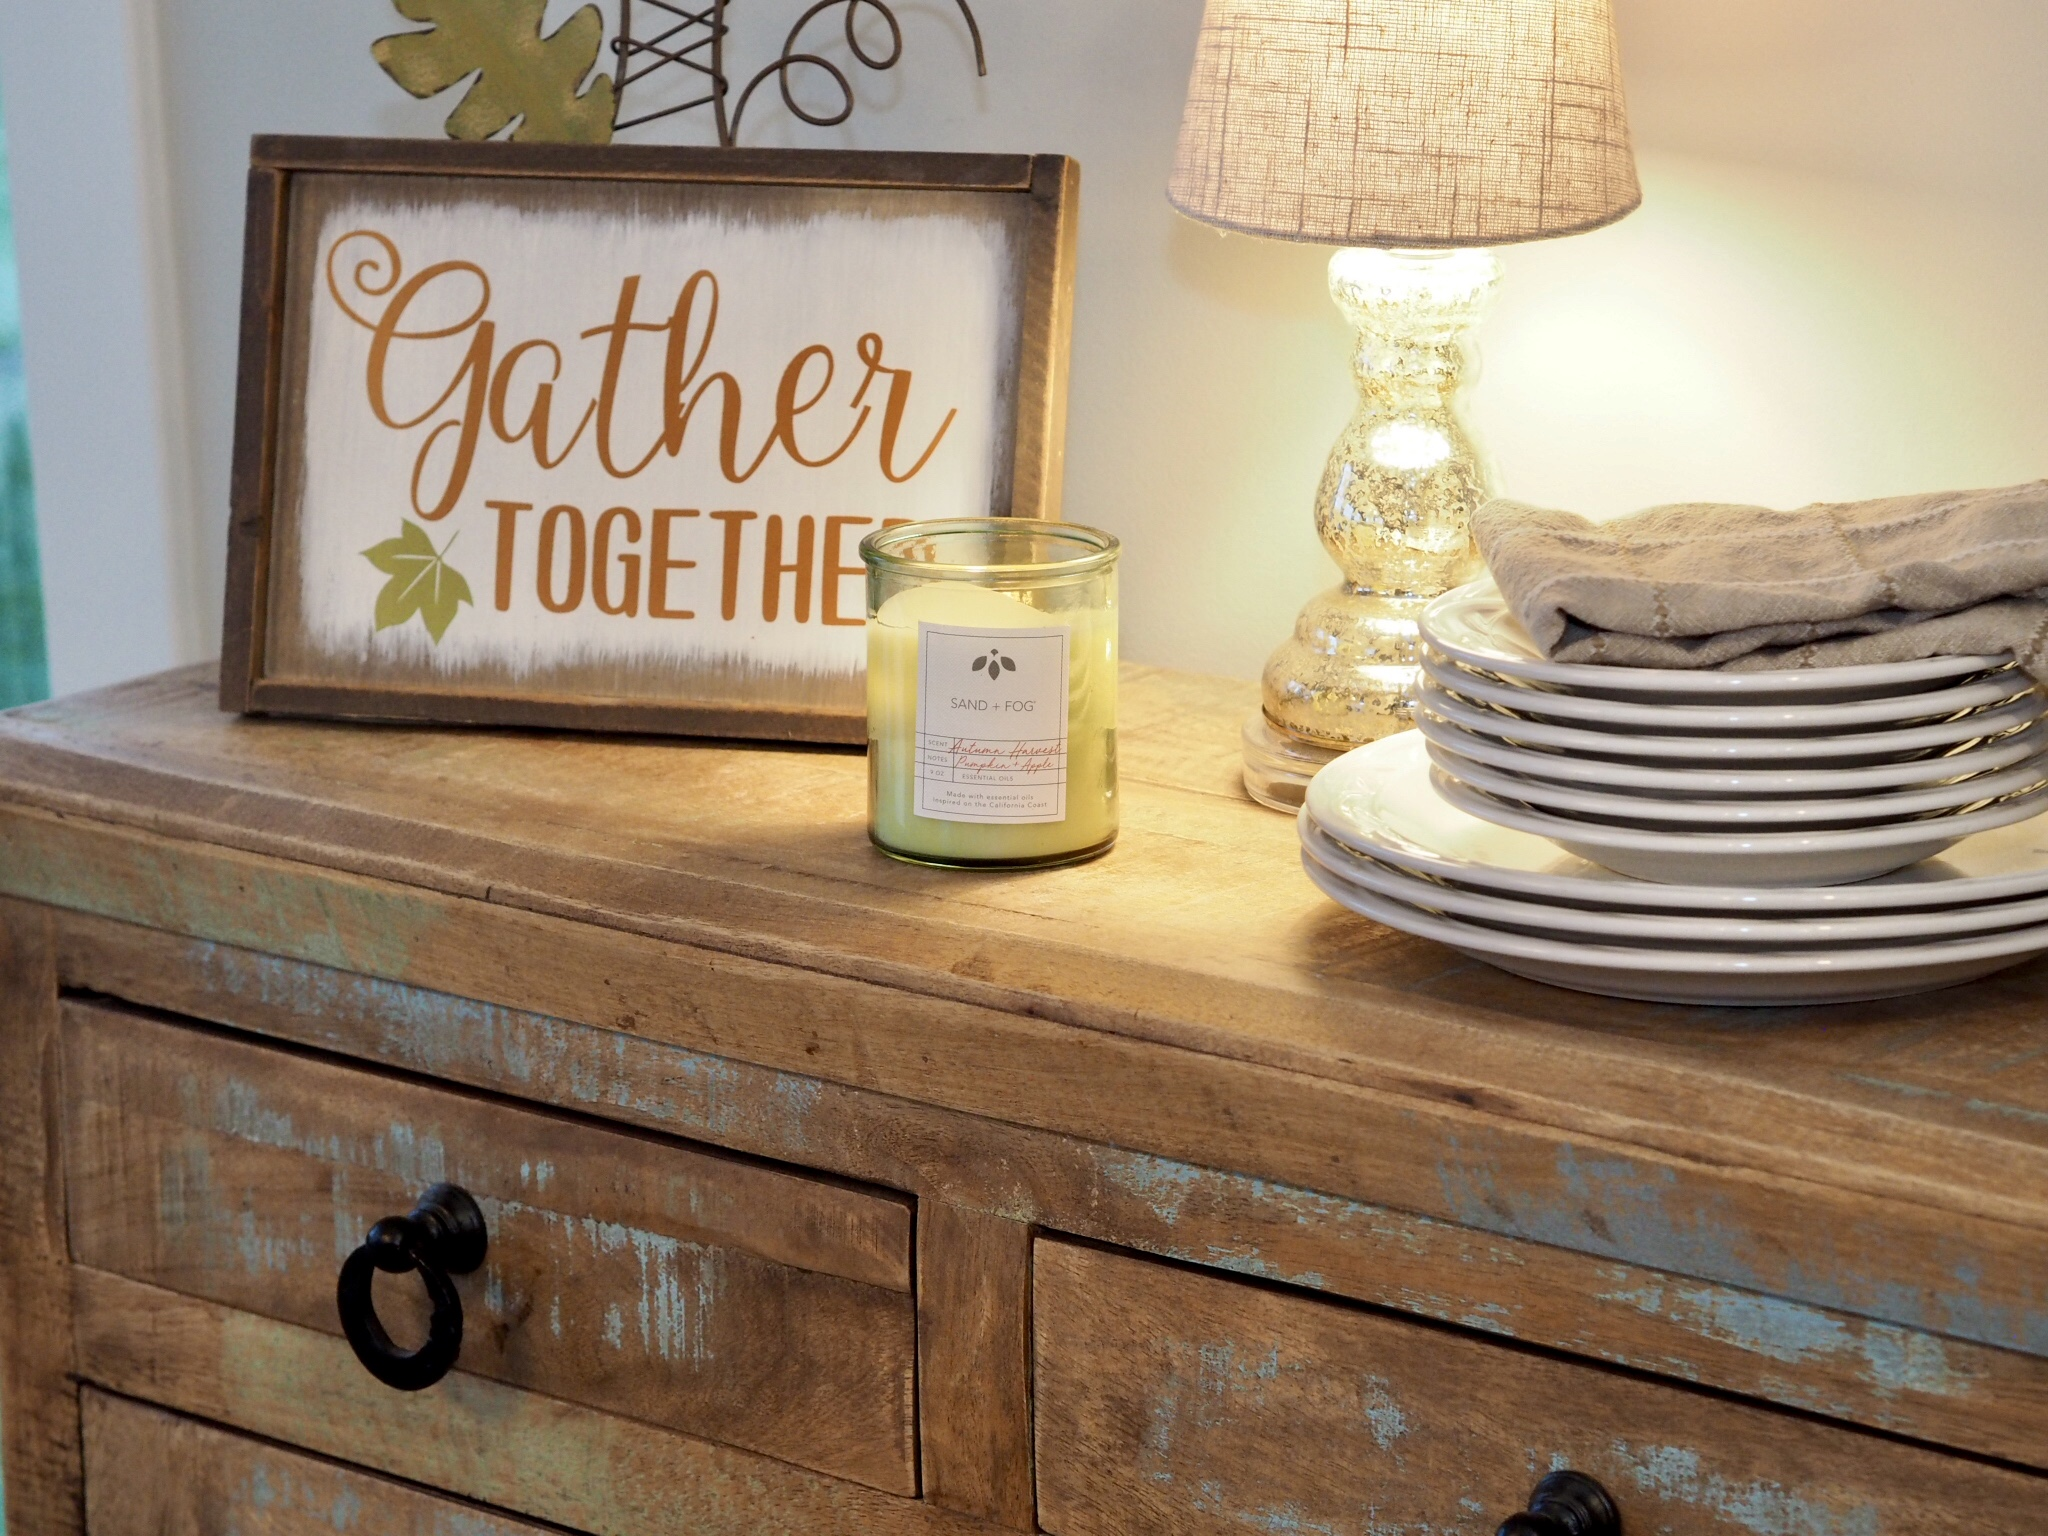 Gather Sign & lamp from Hobby Lobby. Chest from Home Goods.   Sand+Fog soy candle found at Home Goods. Sand+Fog are my favorite store bought candles.